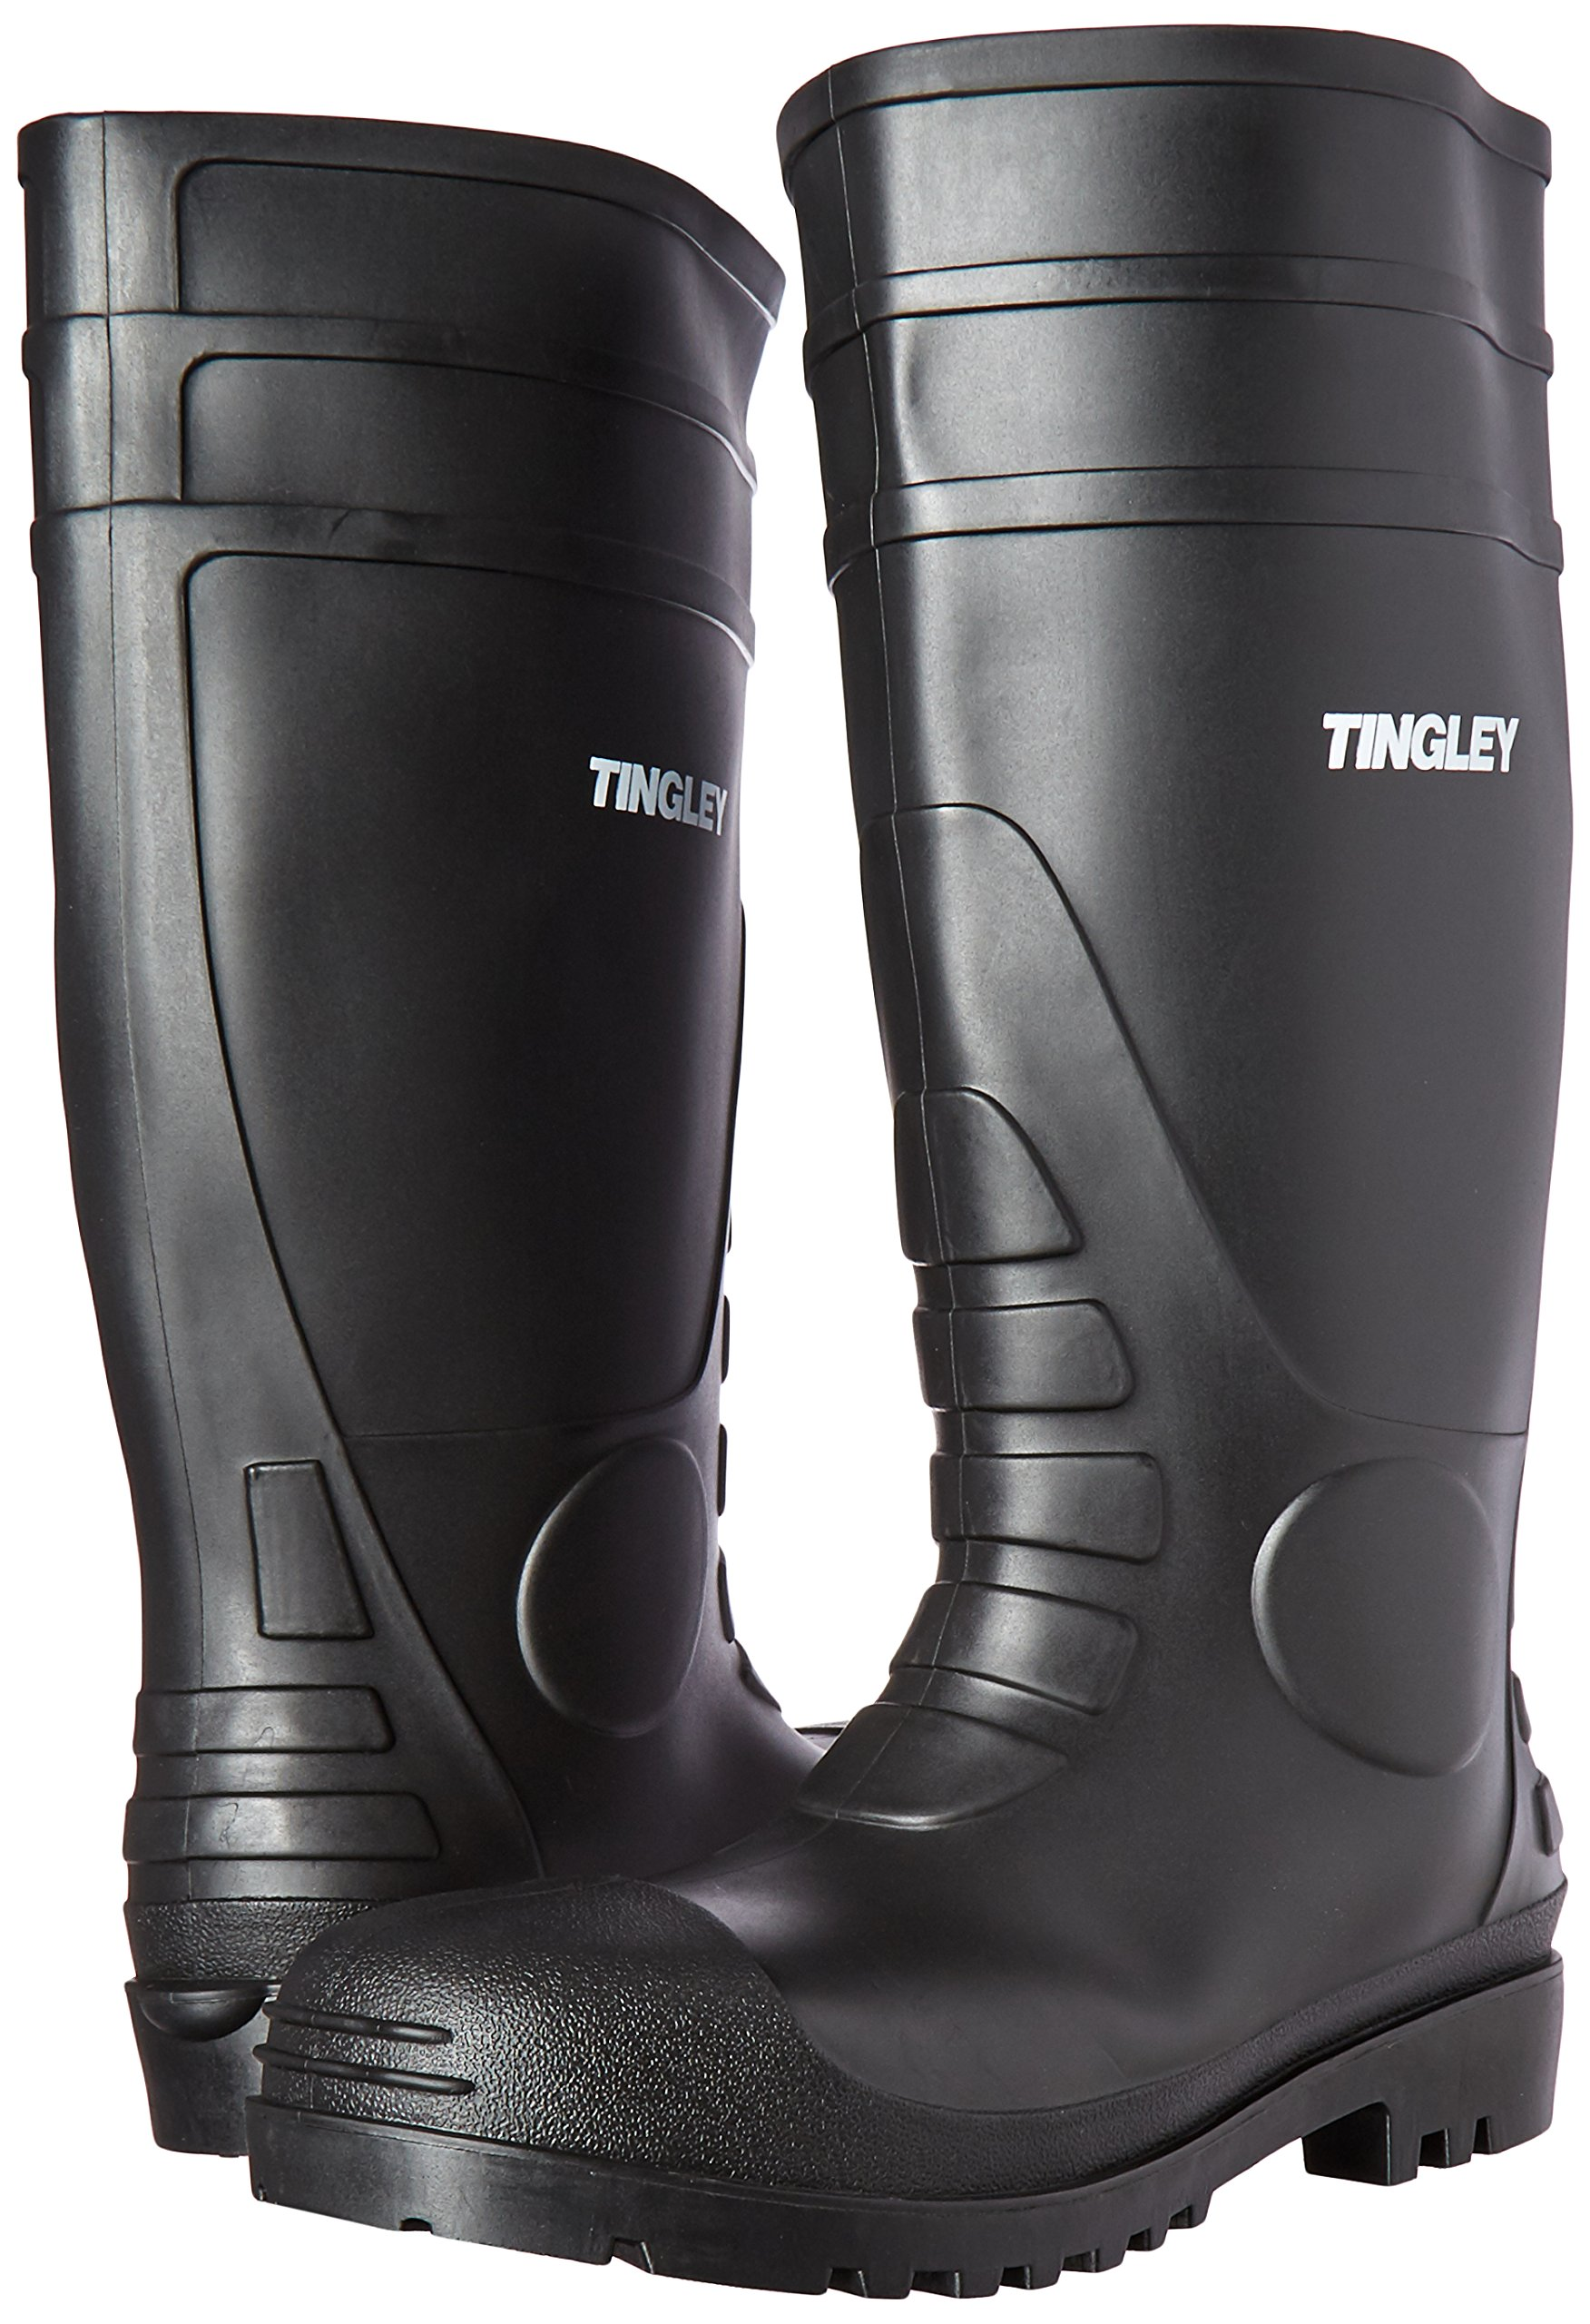 TINGLEY 31151 Economy SZ12 Kneed Boot for Agriculture, 15-Inch, Black by TINGLEY (Image #6)